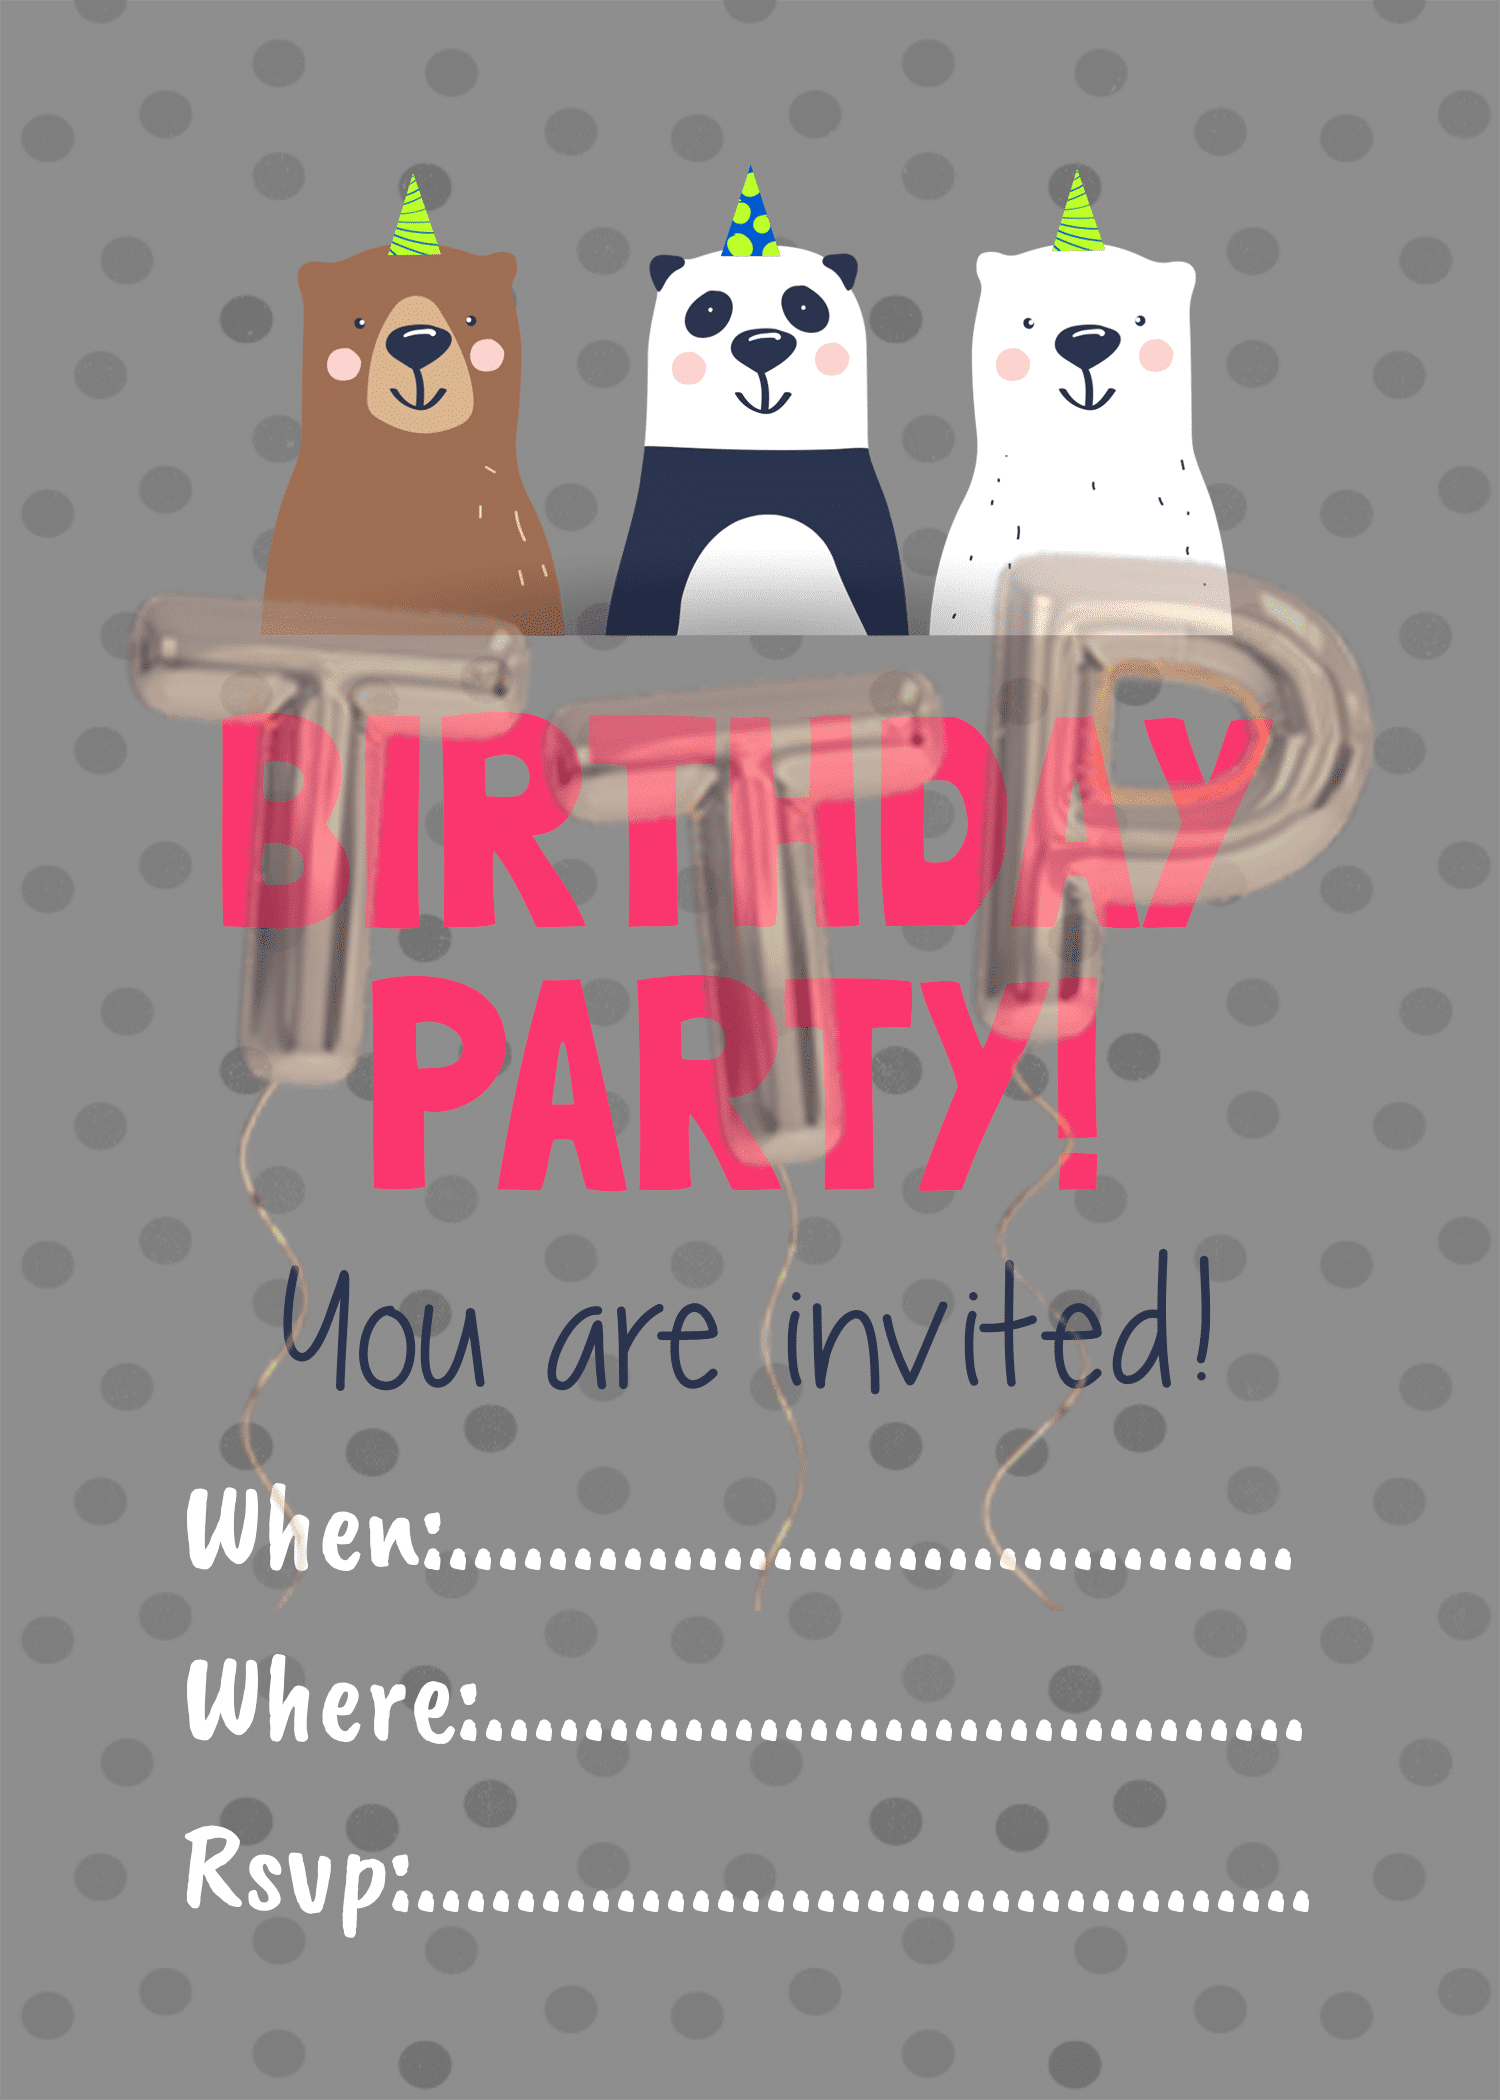 bears gray free download invitation watermark